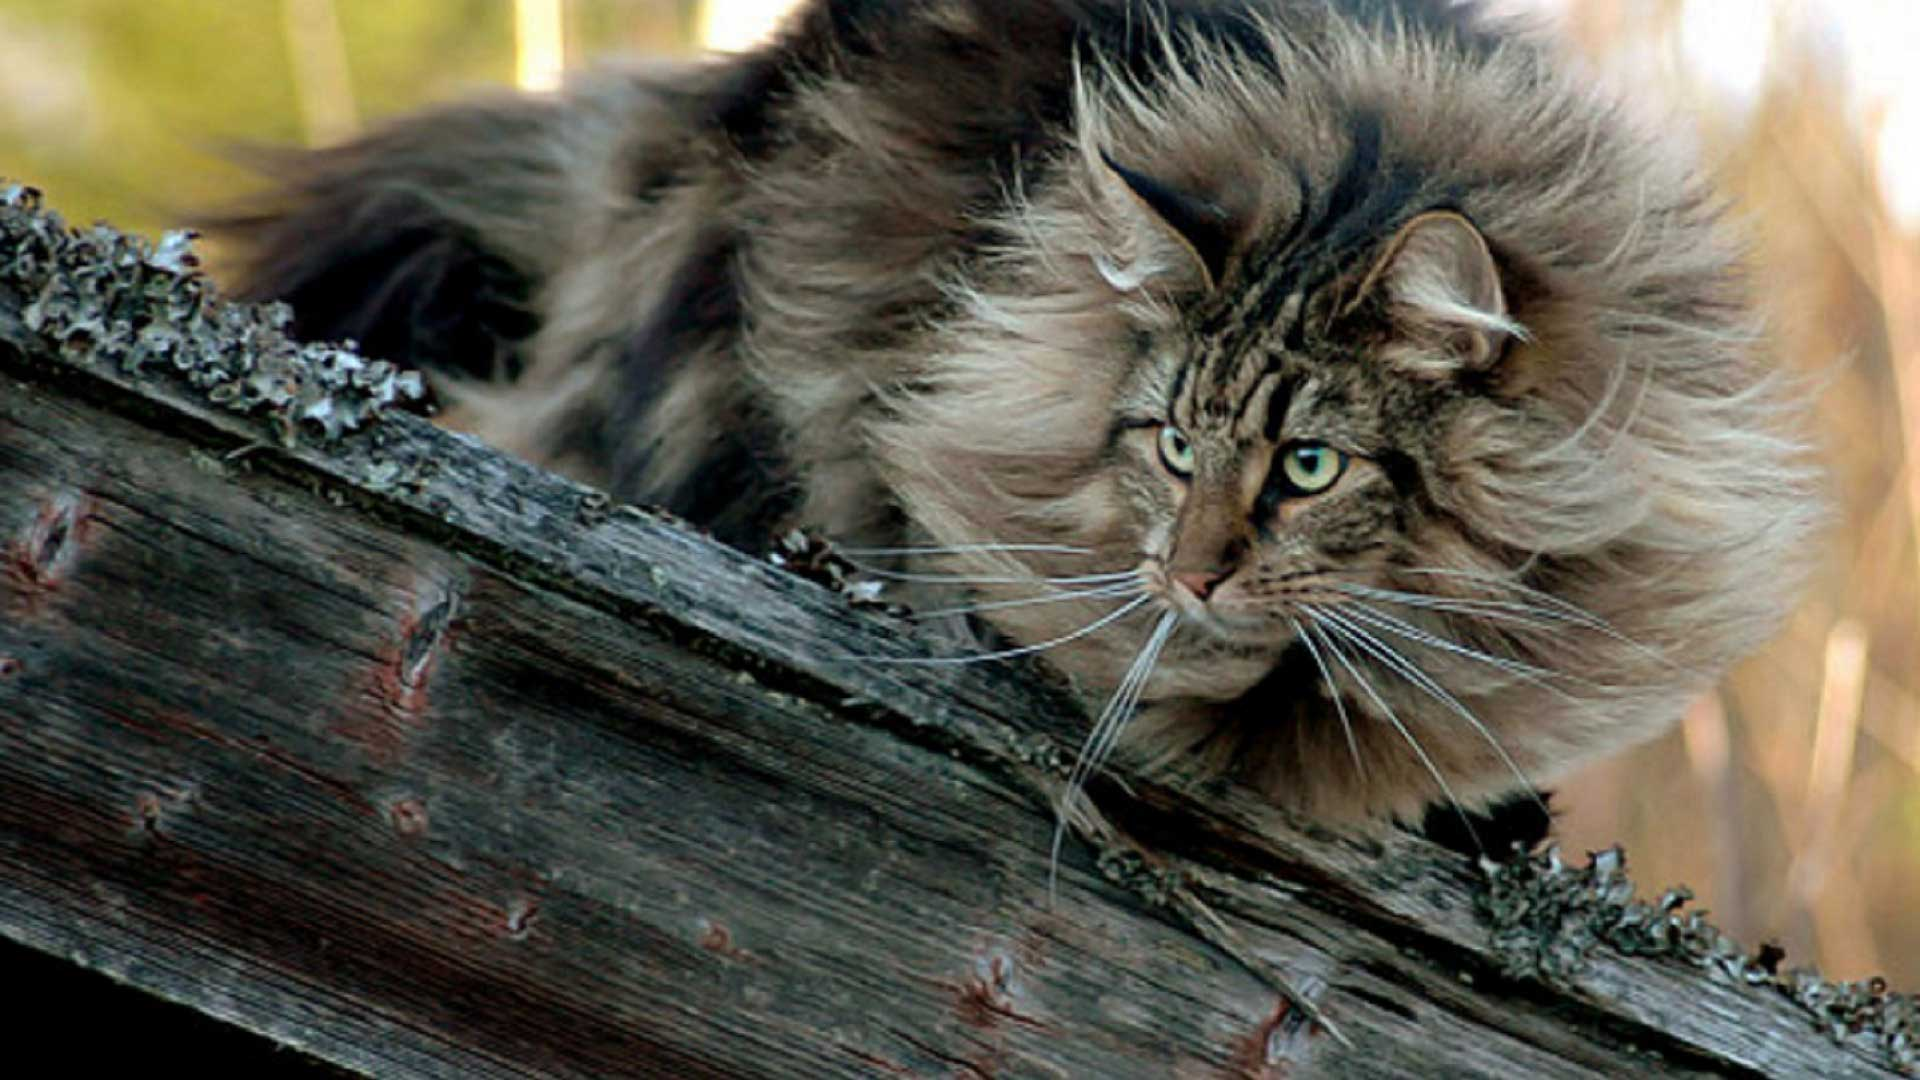 forest cat on a log photo and wallpaper